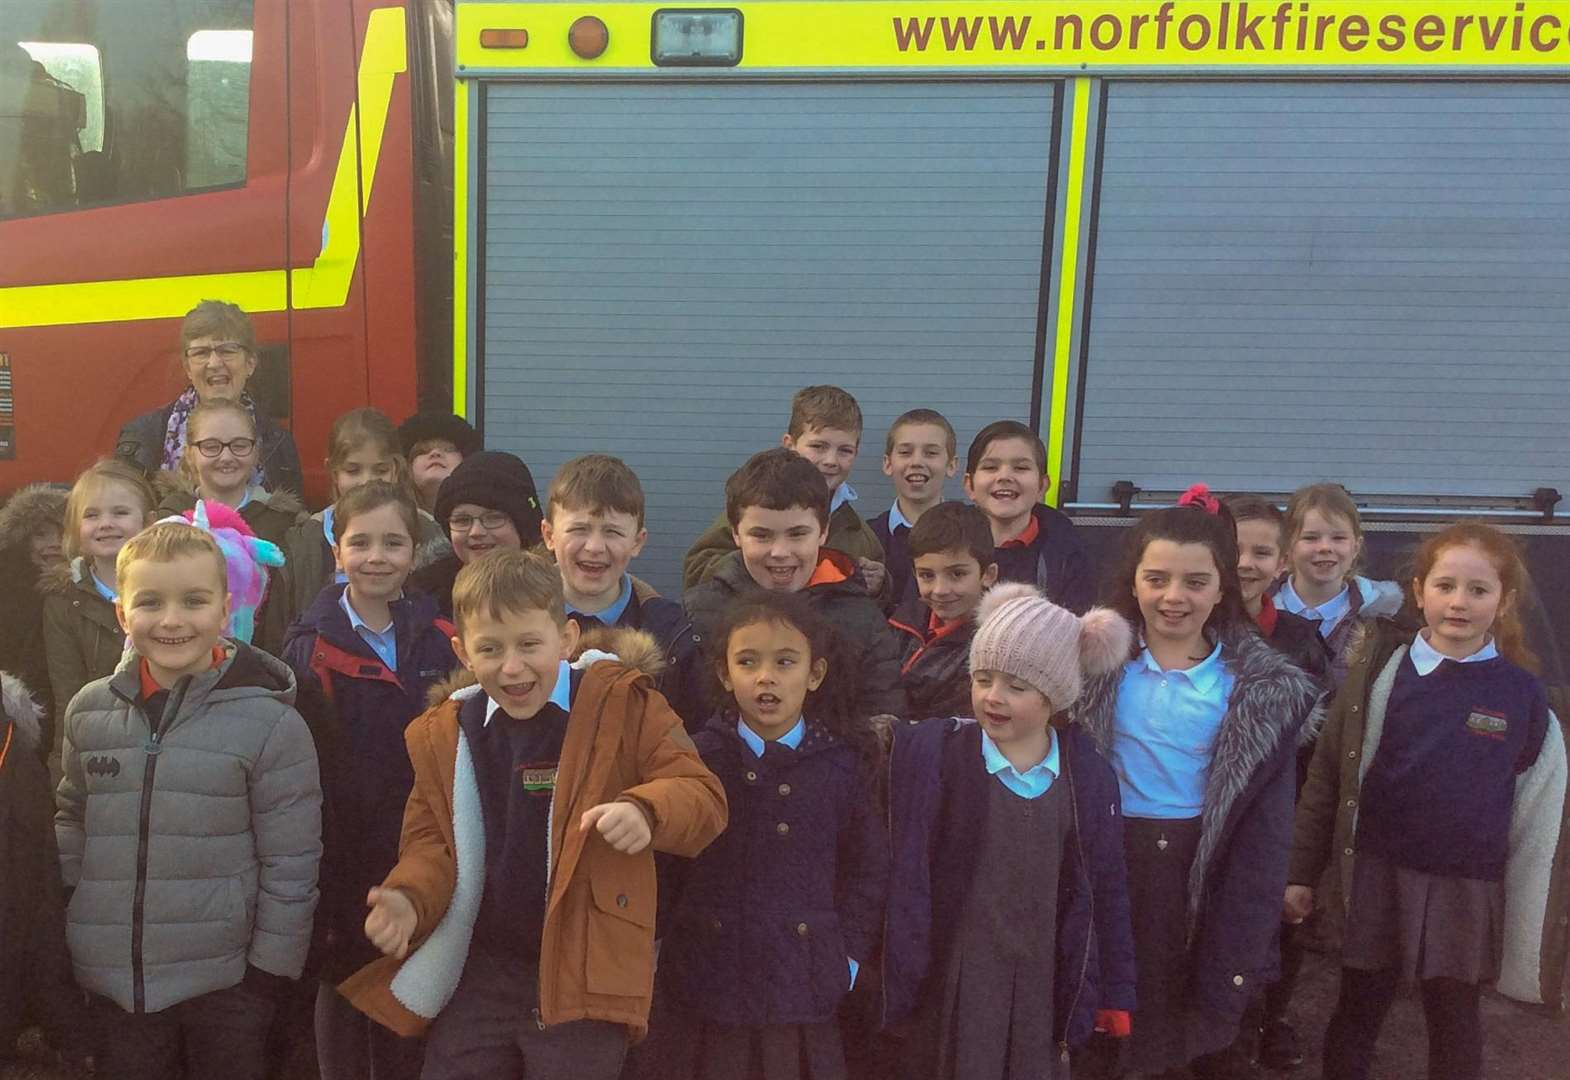 Fire engine visit sparks excitement at Tilney All Saints School